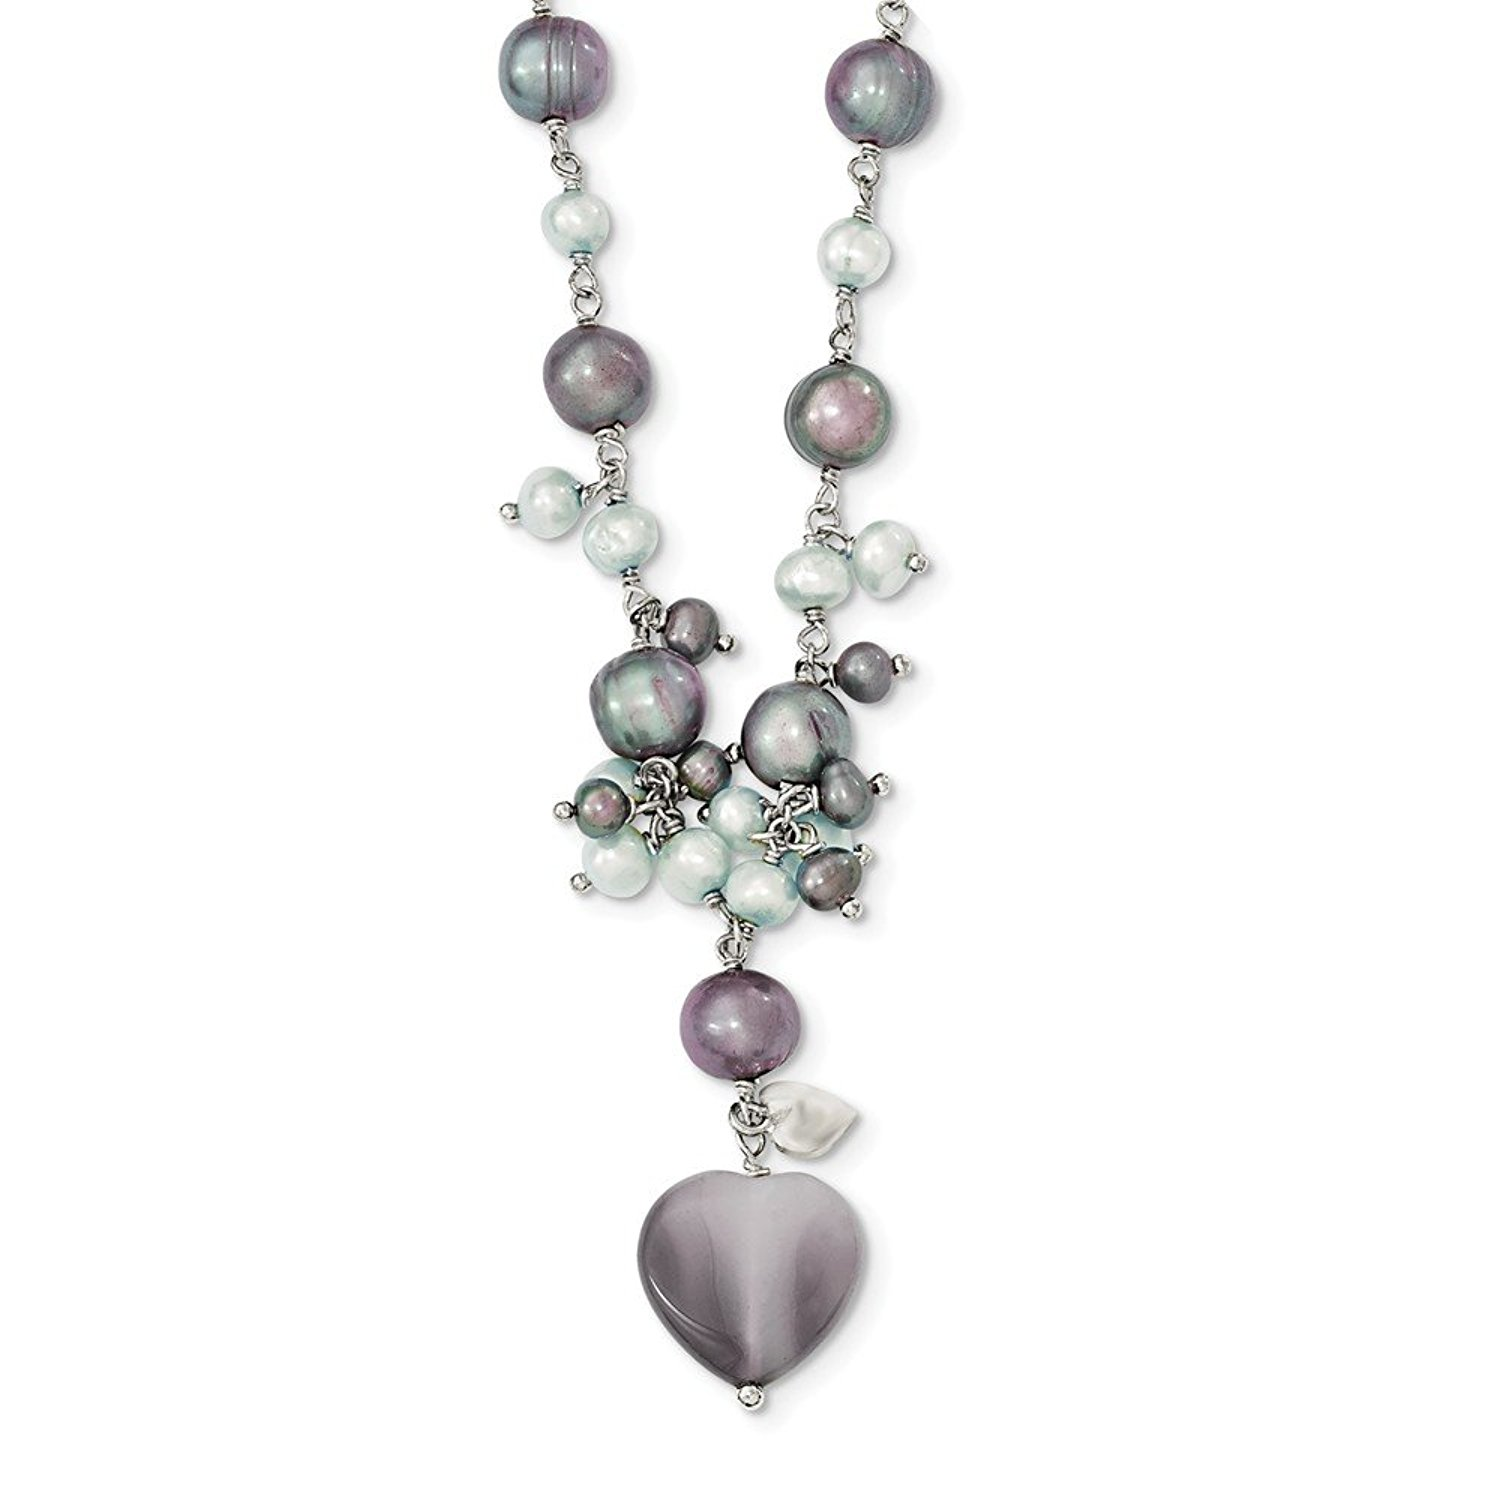 Roy Rose Jewelry Sterling Silver White Freshwater Cultured Pearl Necklace 16 Length